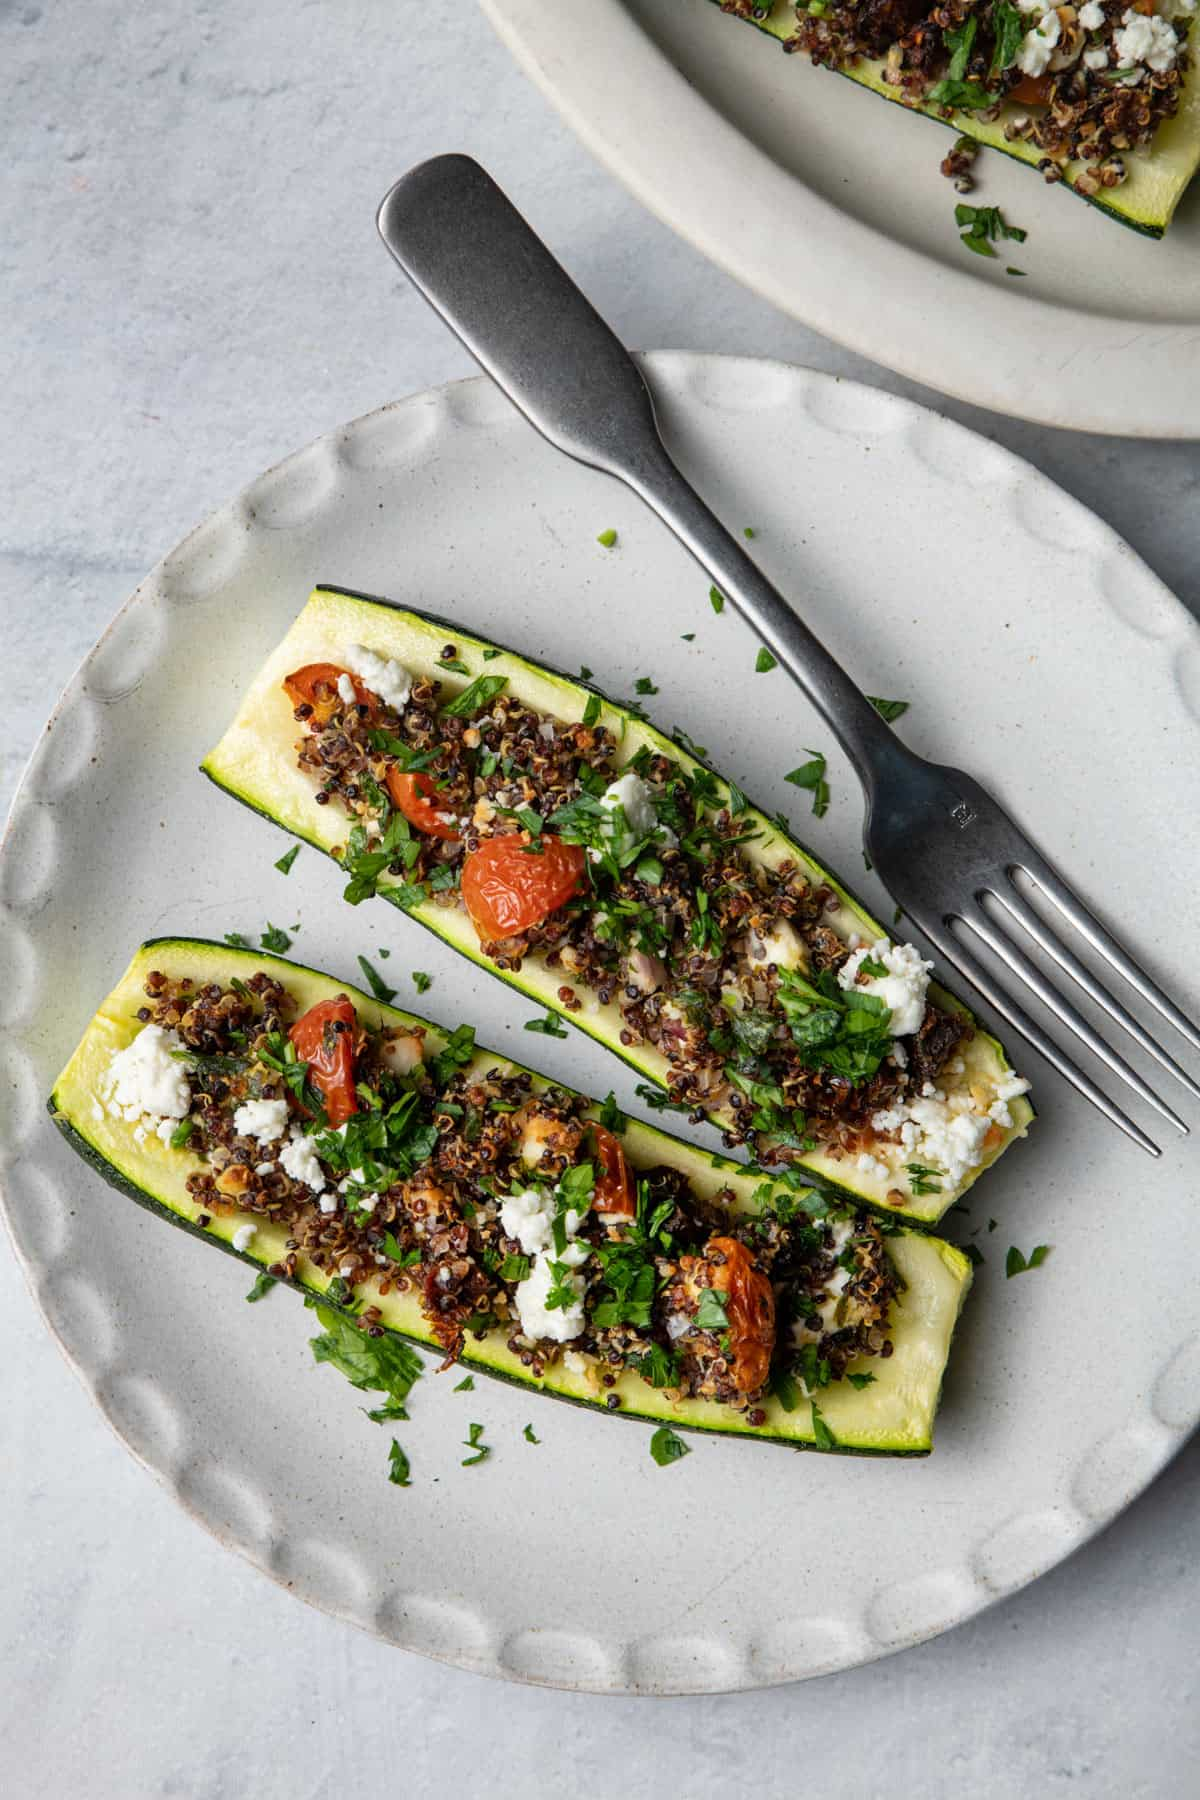 Plate with two quinoa stuffed zucchini boats and fork